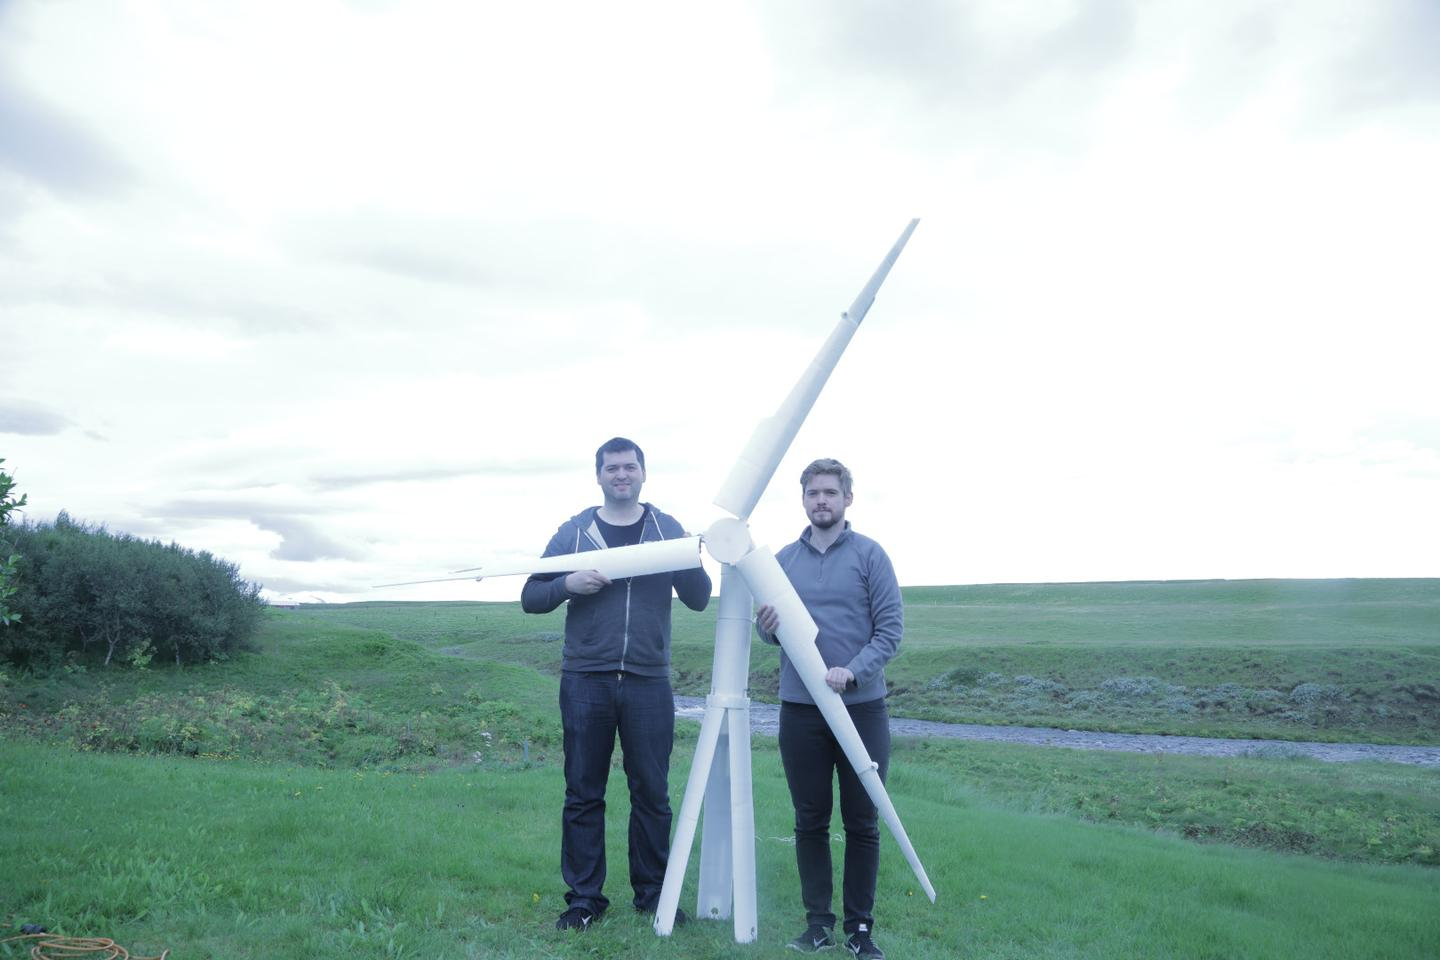 A 3D-printed prototype of the Trinity wind turbine, with company founders Einer and Agust Agustsson